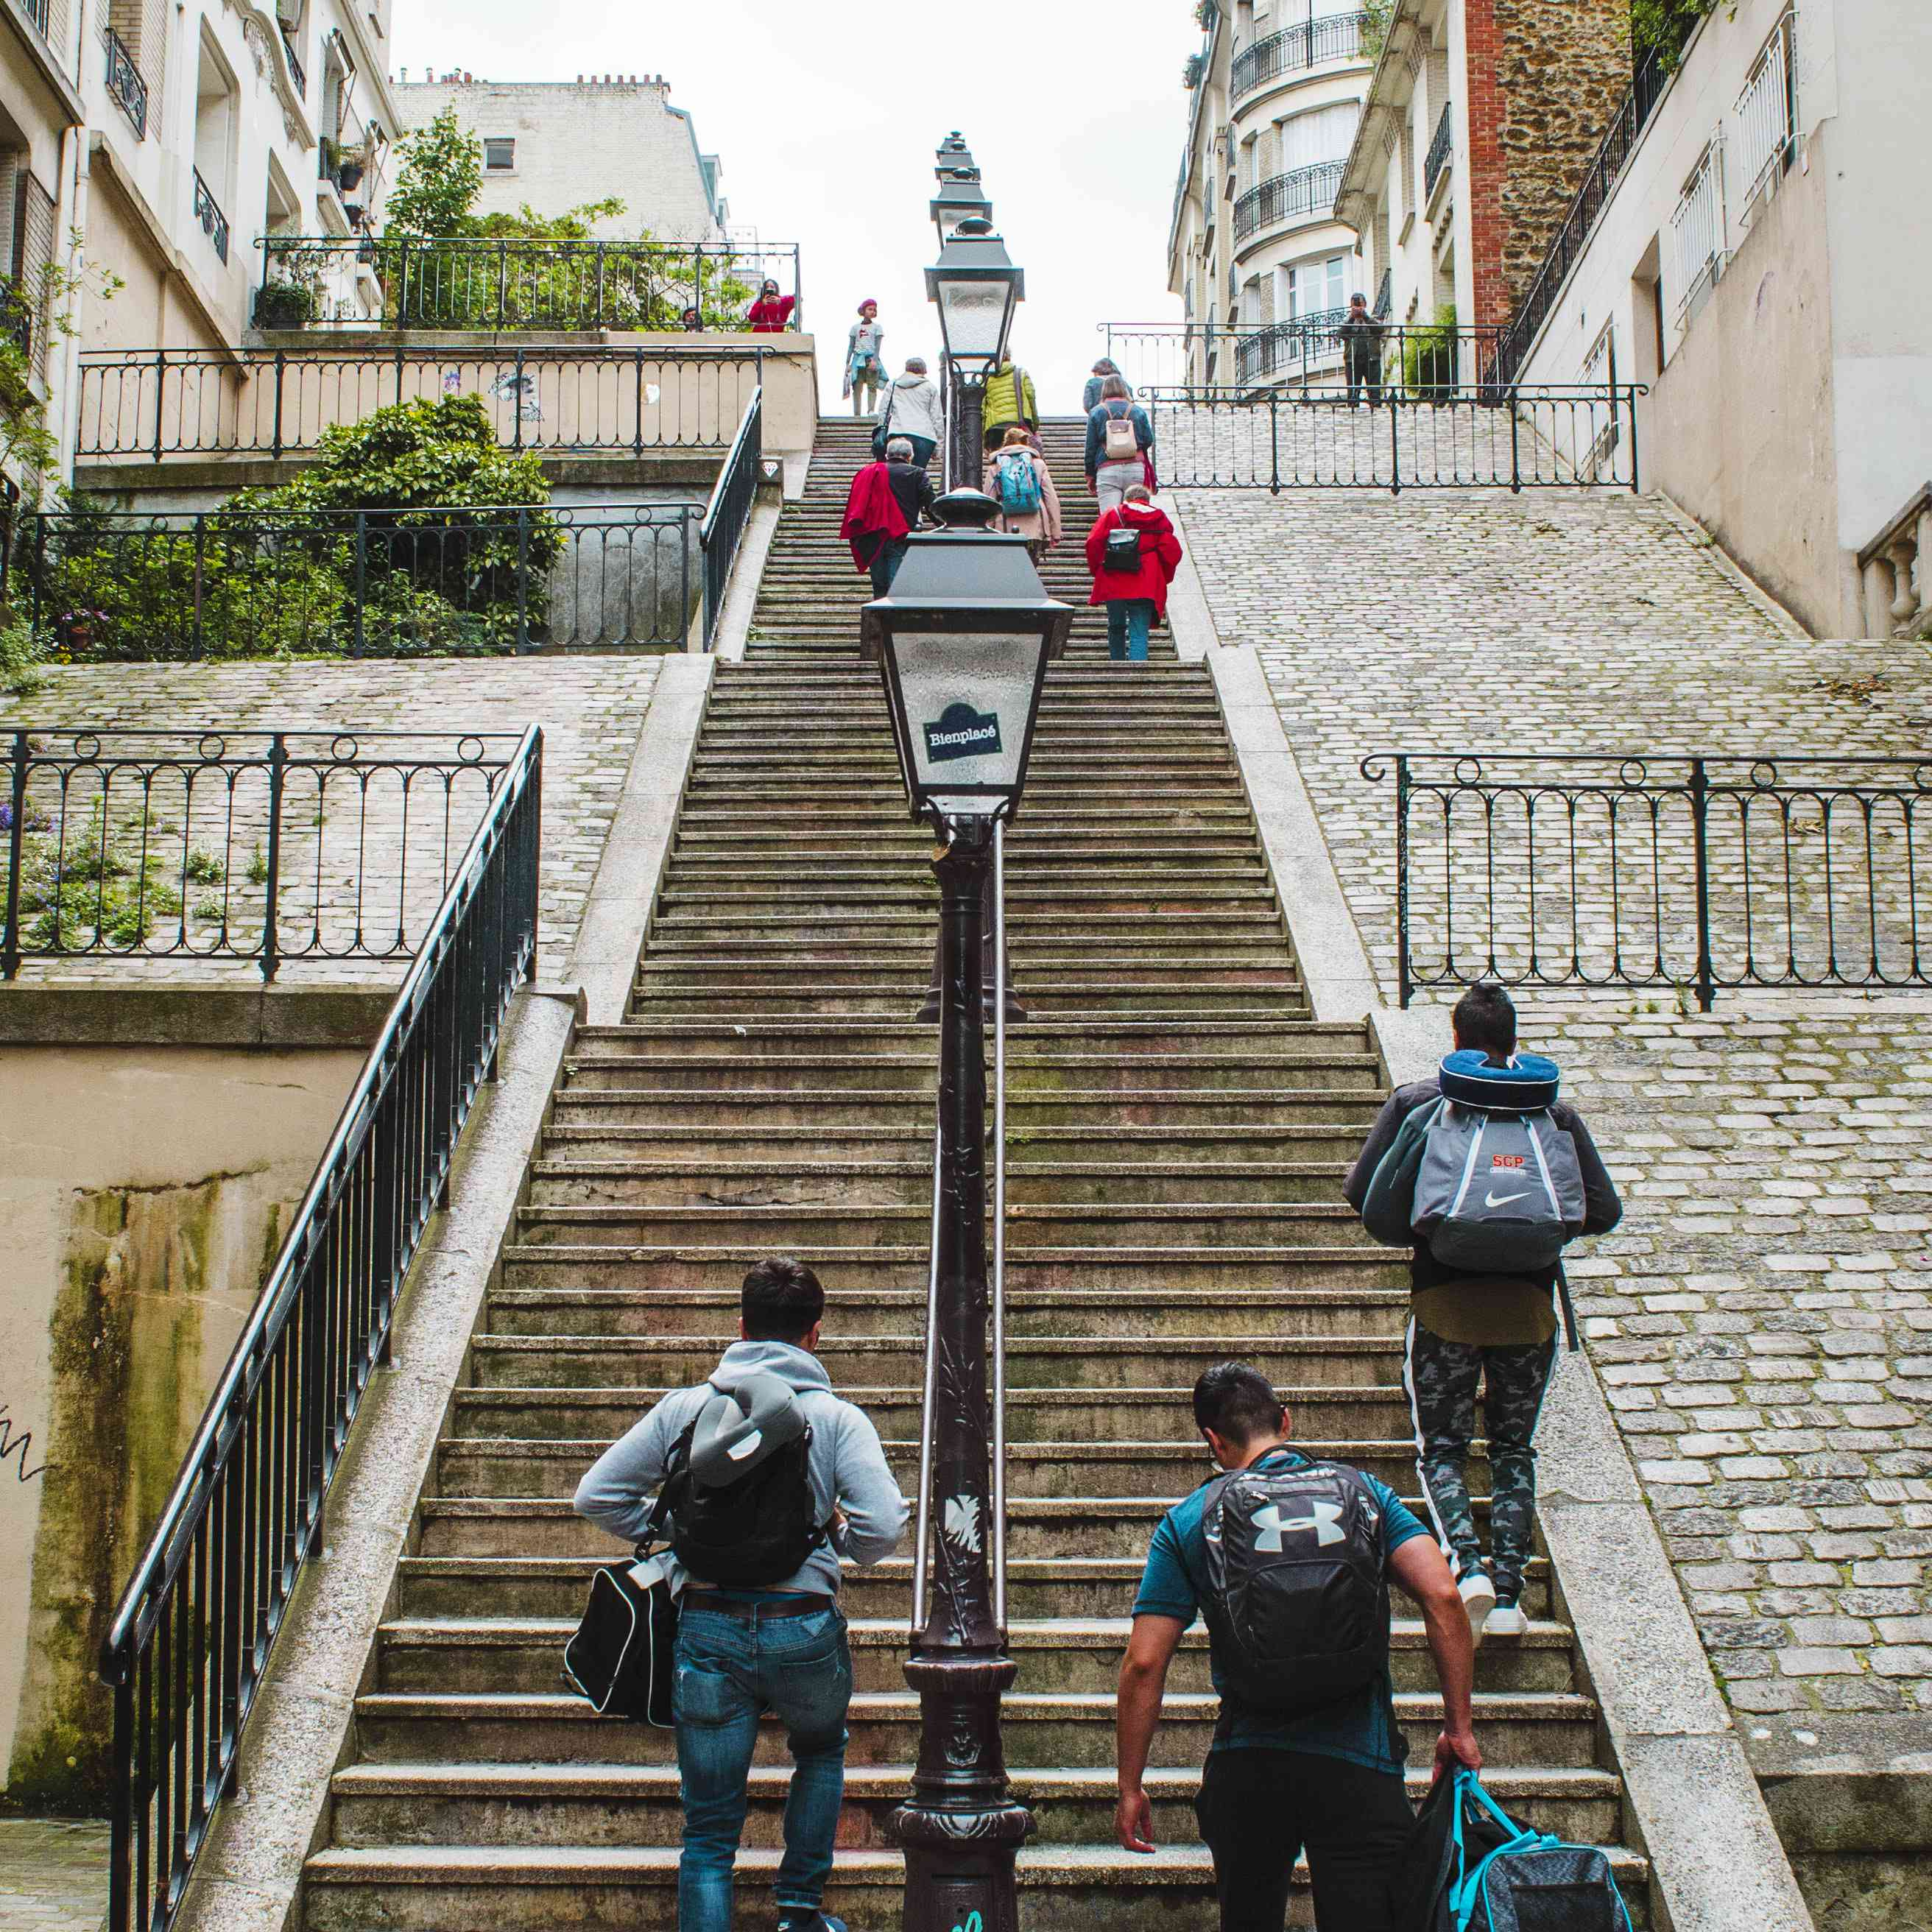 Stairs in Montmarte